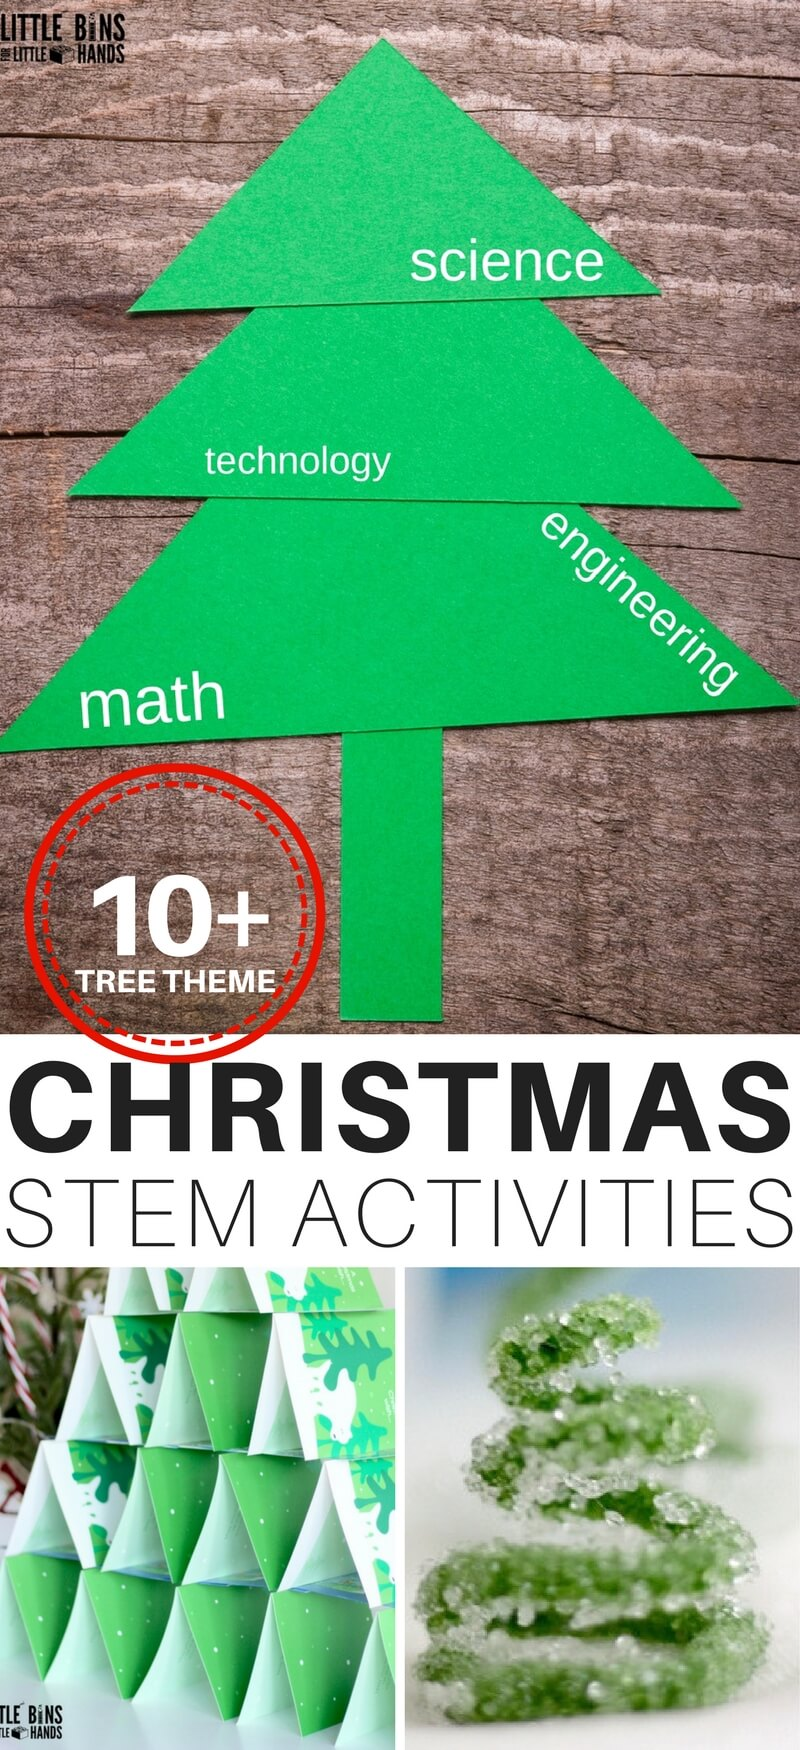 These fun Christmas STEM activities are the perfect science activities for toddlers! Learn just how much fun STEM and the Christmas holiday can be! #STEM #holiday #education #Christmas